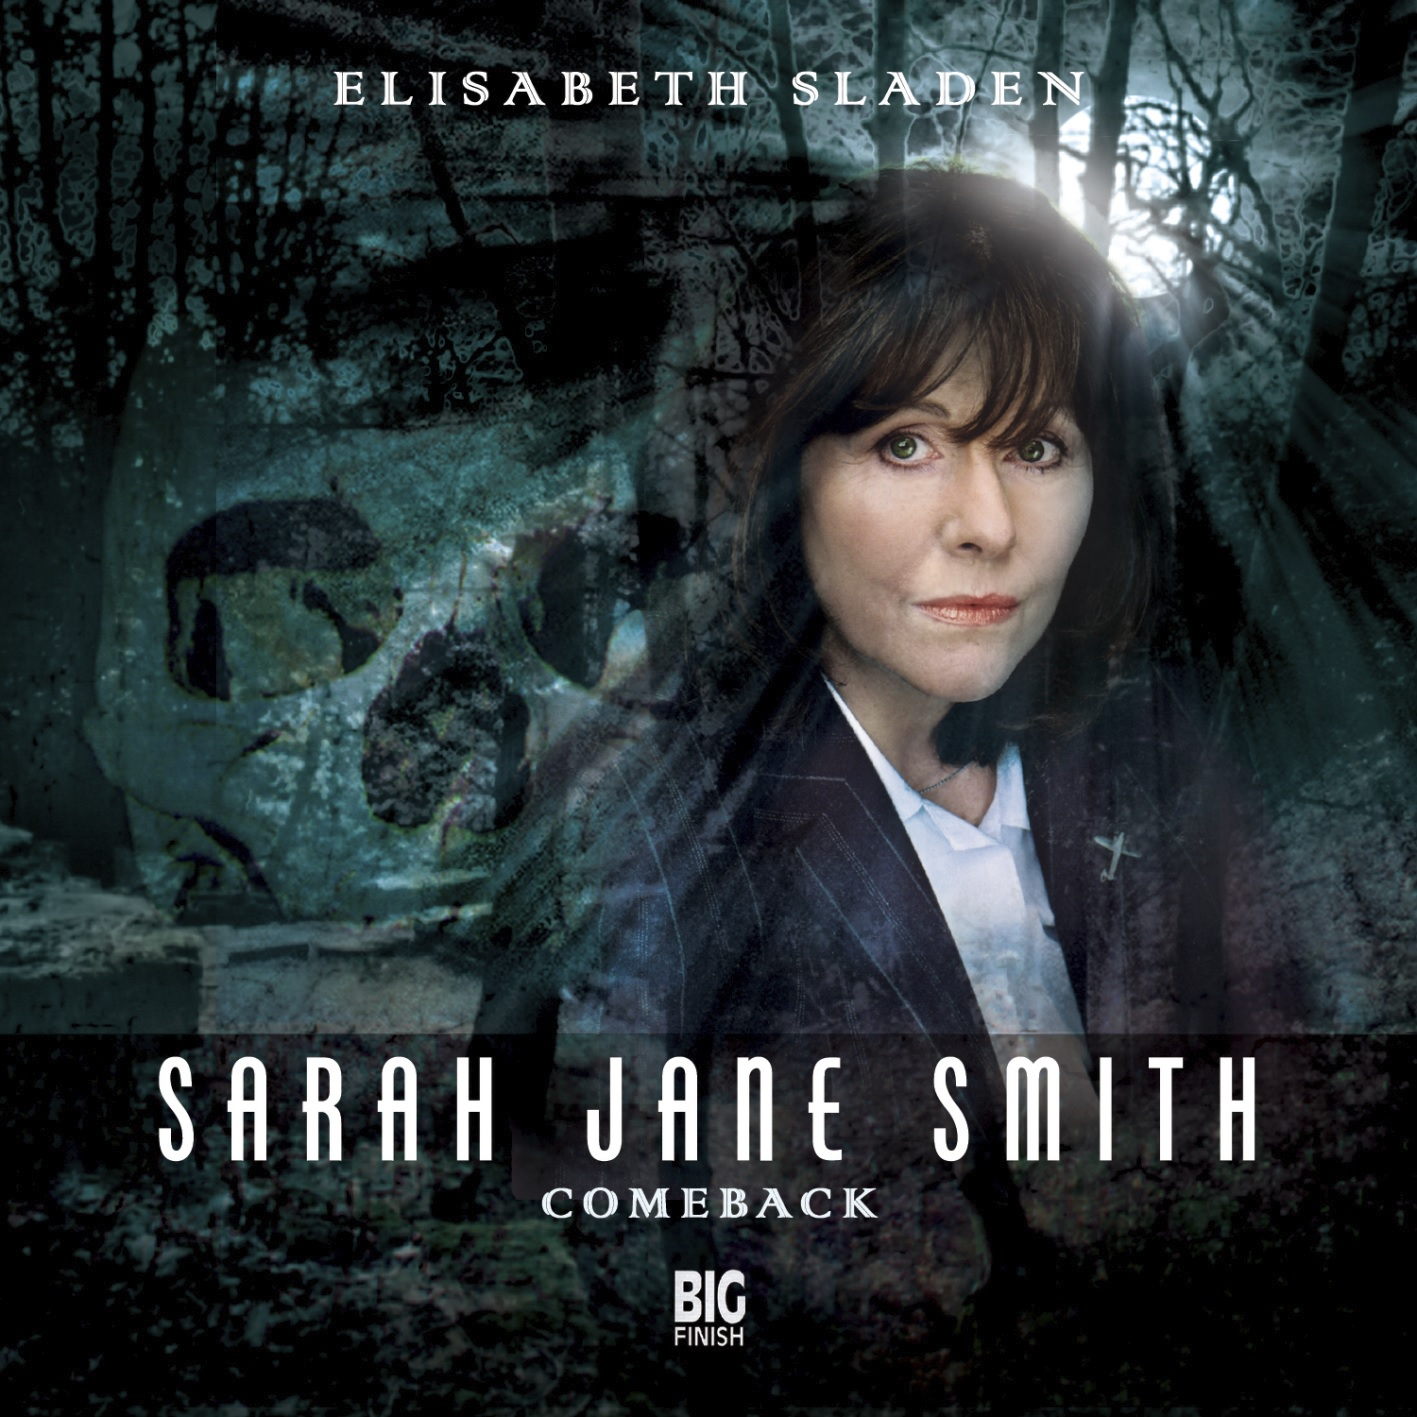 Listen to Big Finish's Sarah Jane Smith: Comeback For Free Now!